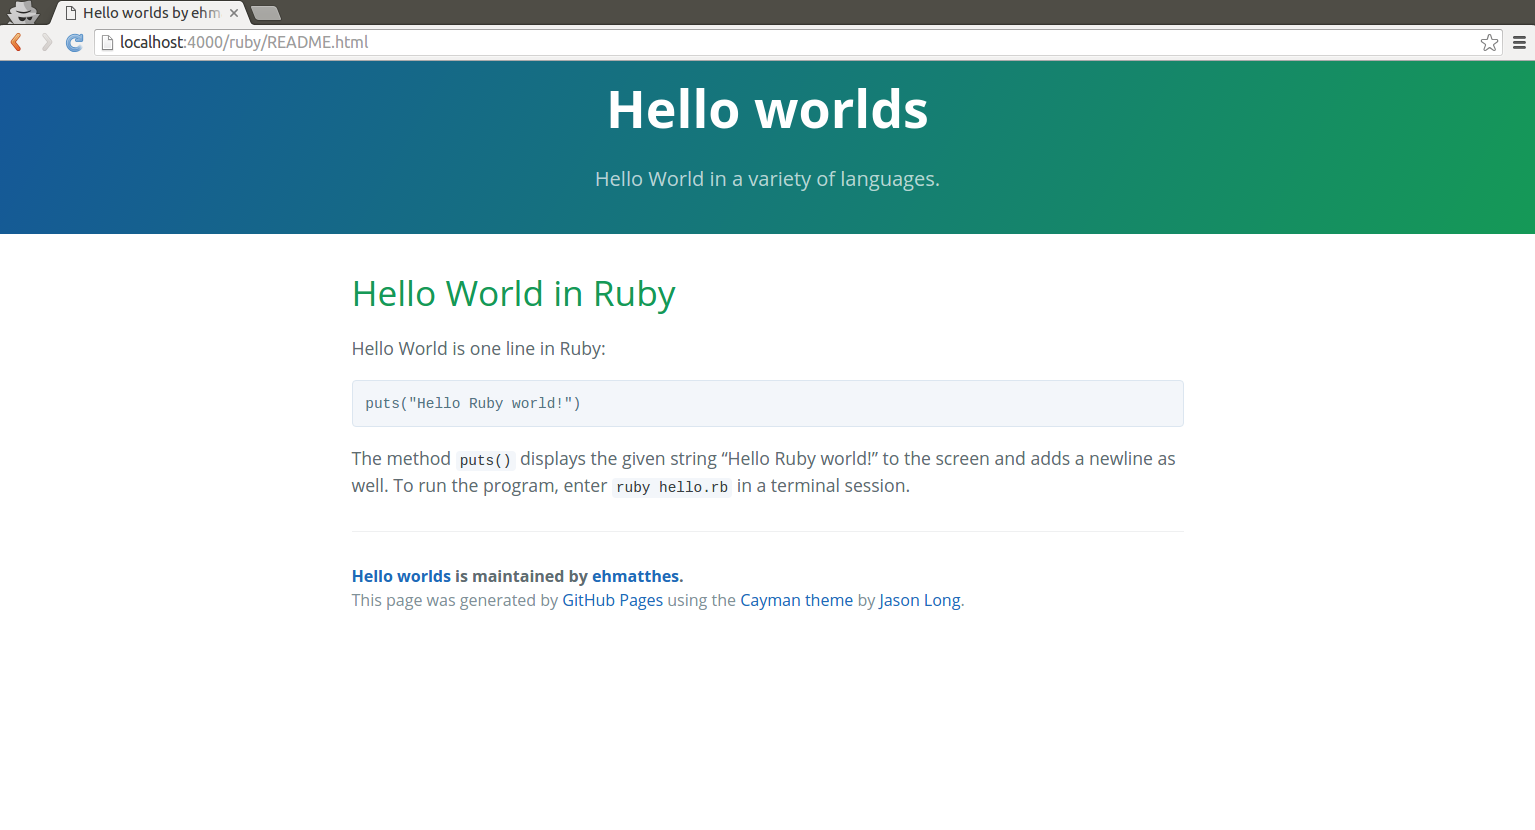 Ruby README page